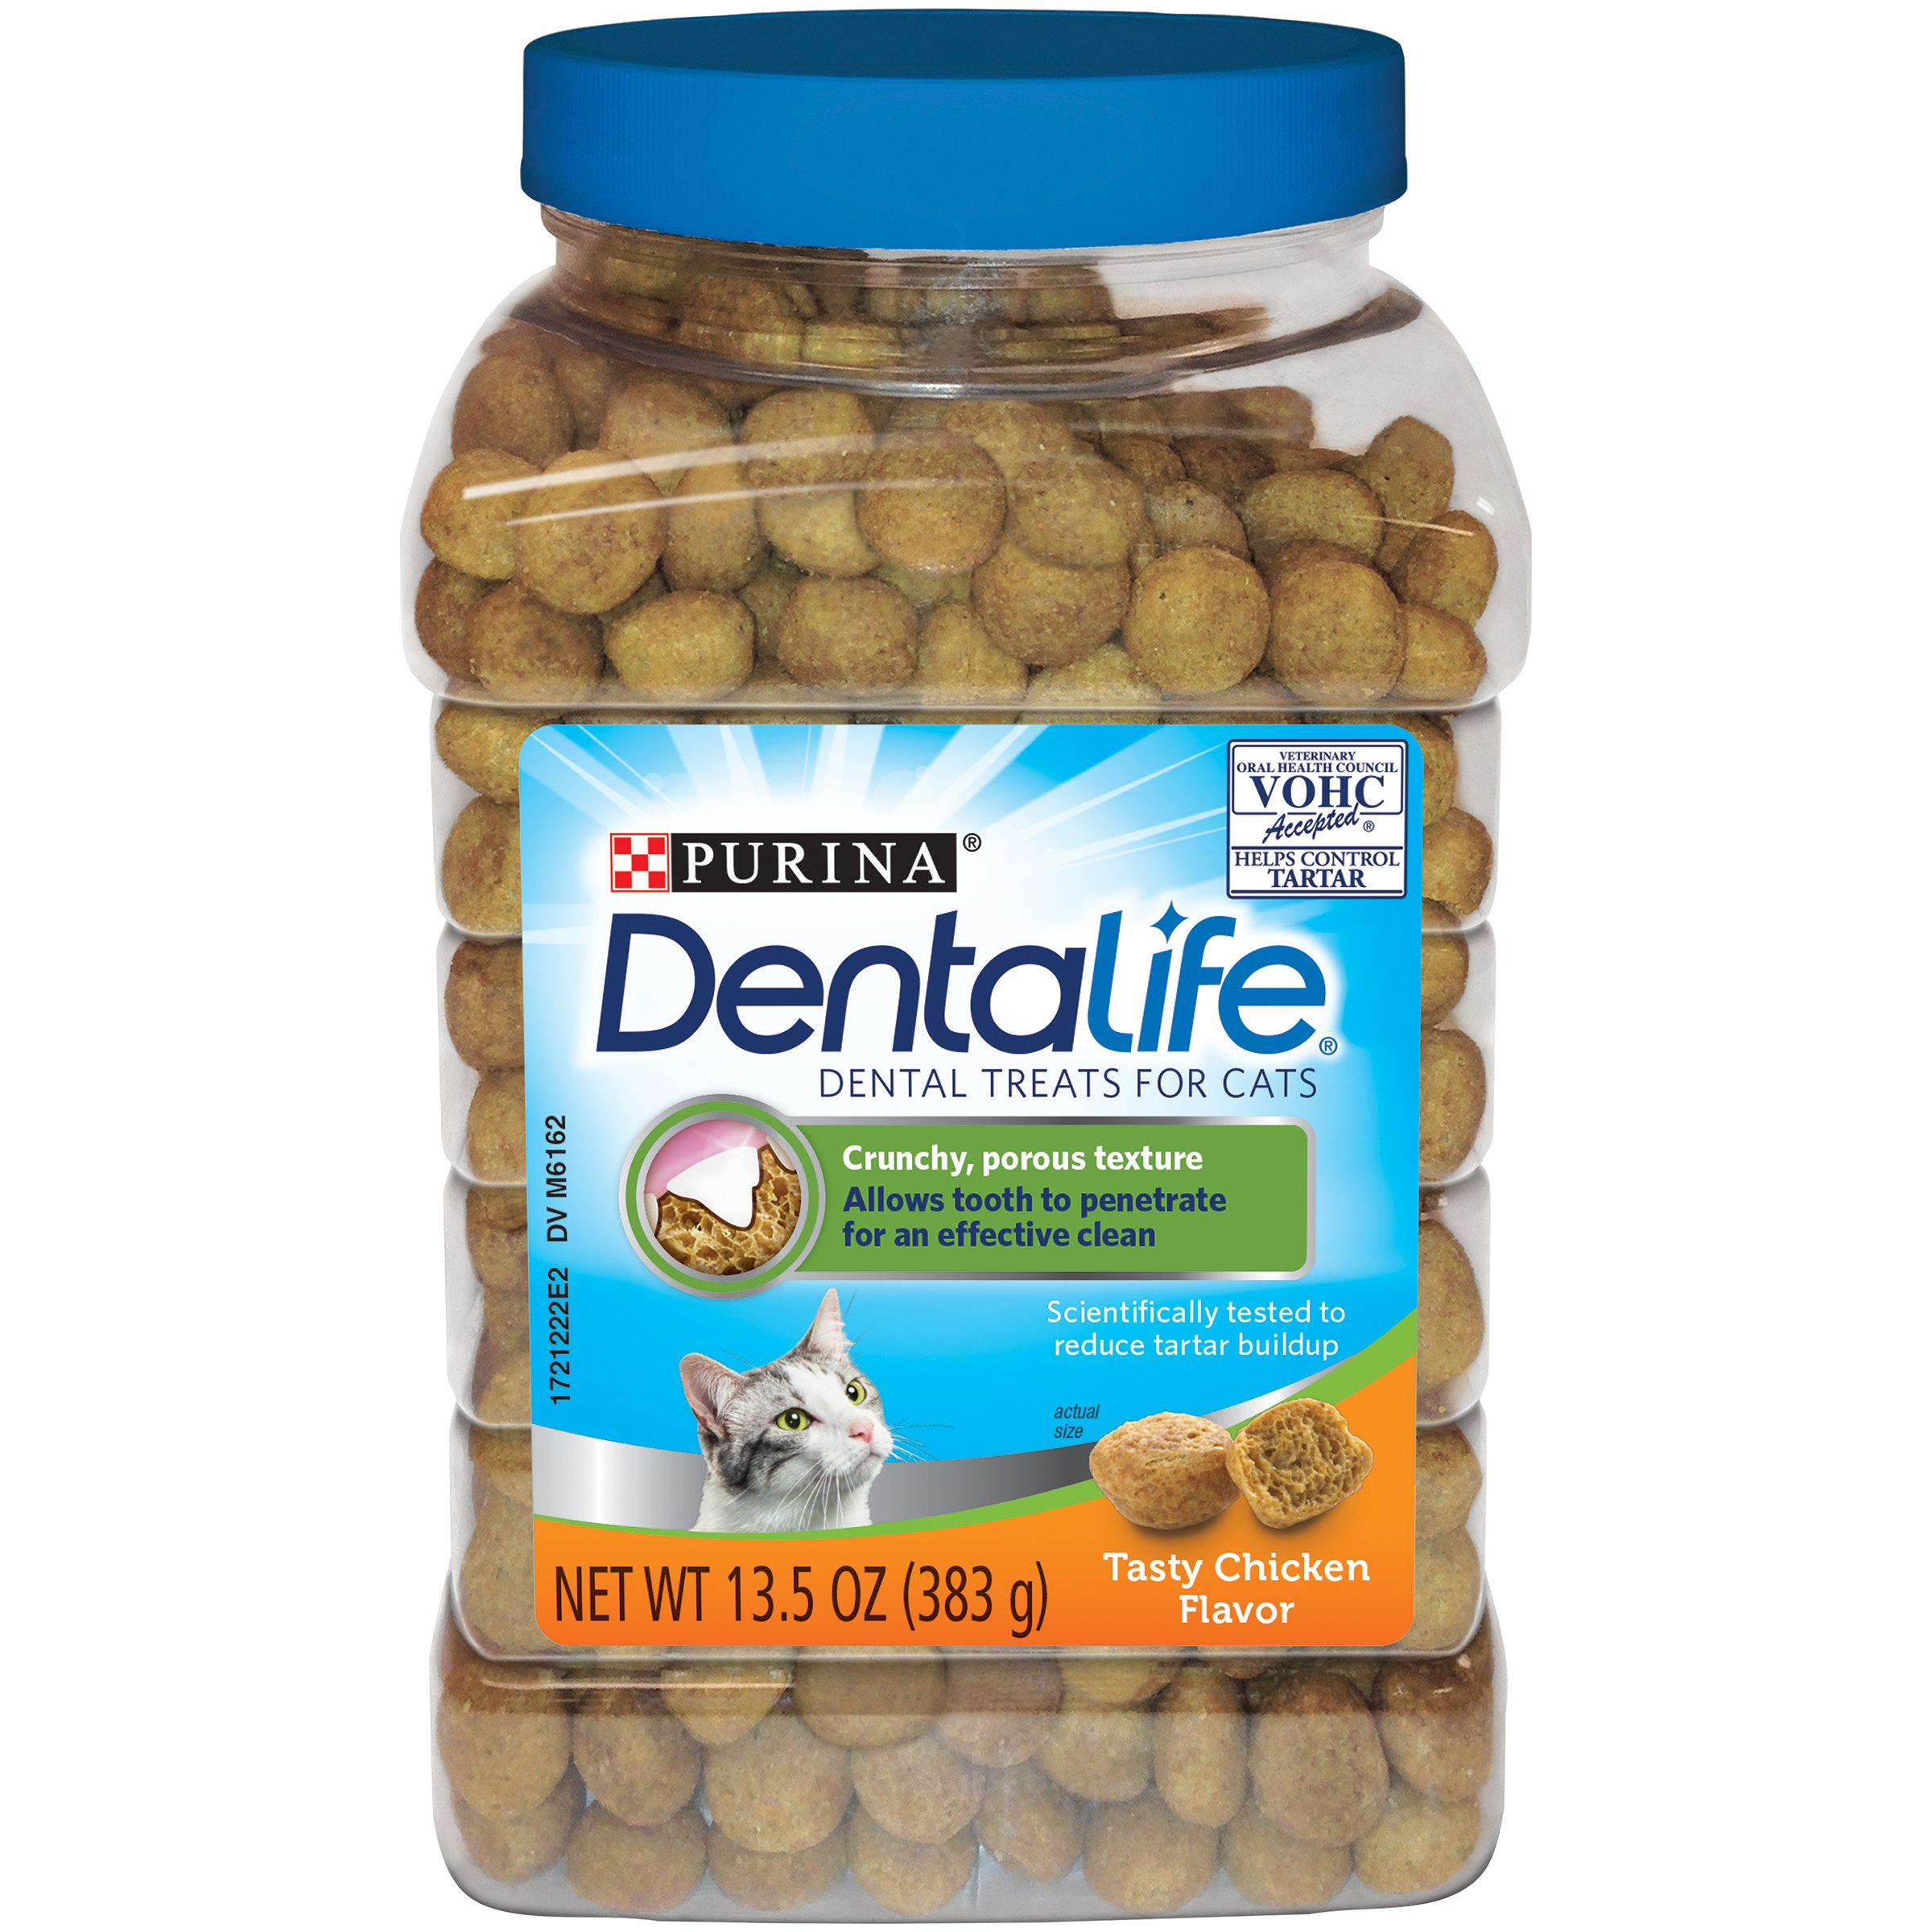 Purina DentaLife Dental Cat Treats Standard Packaging Chicken Flavor